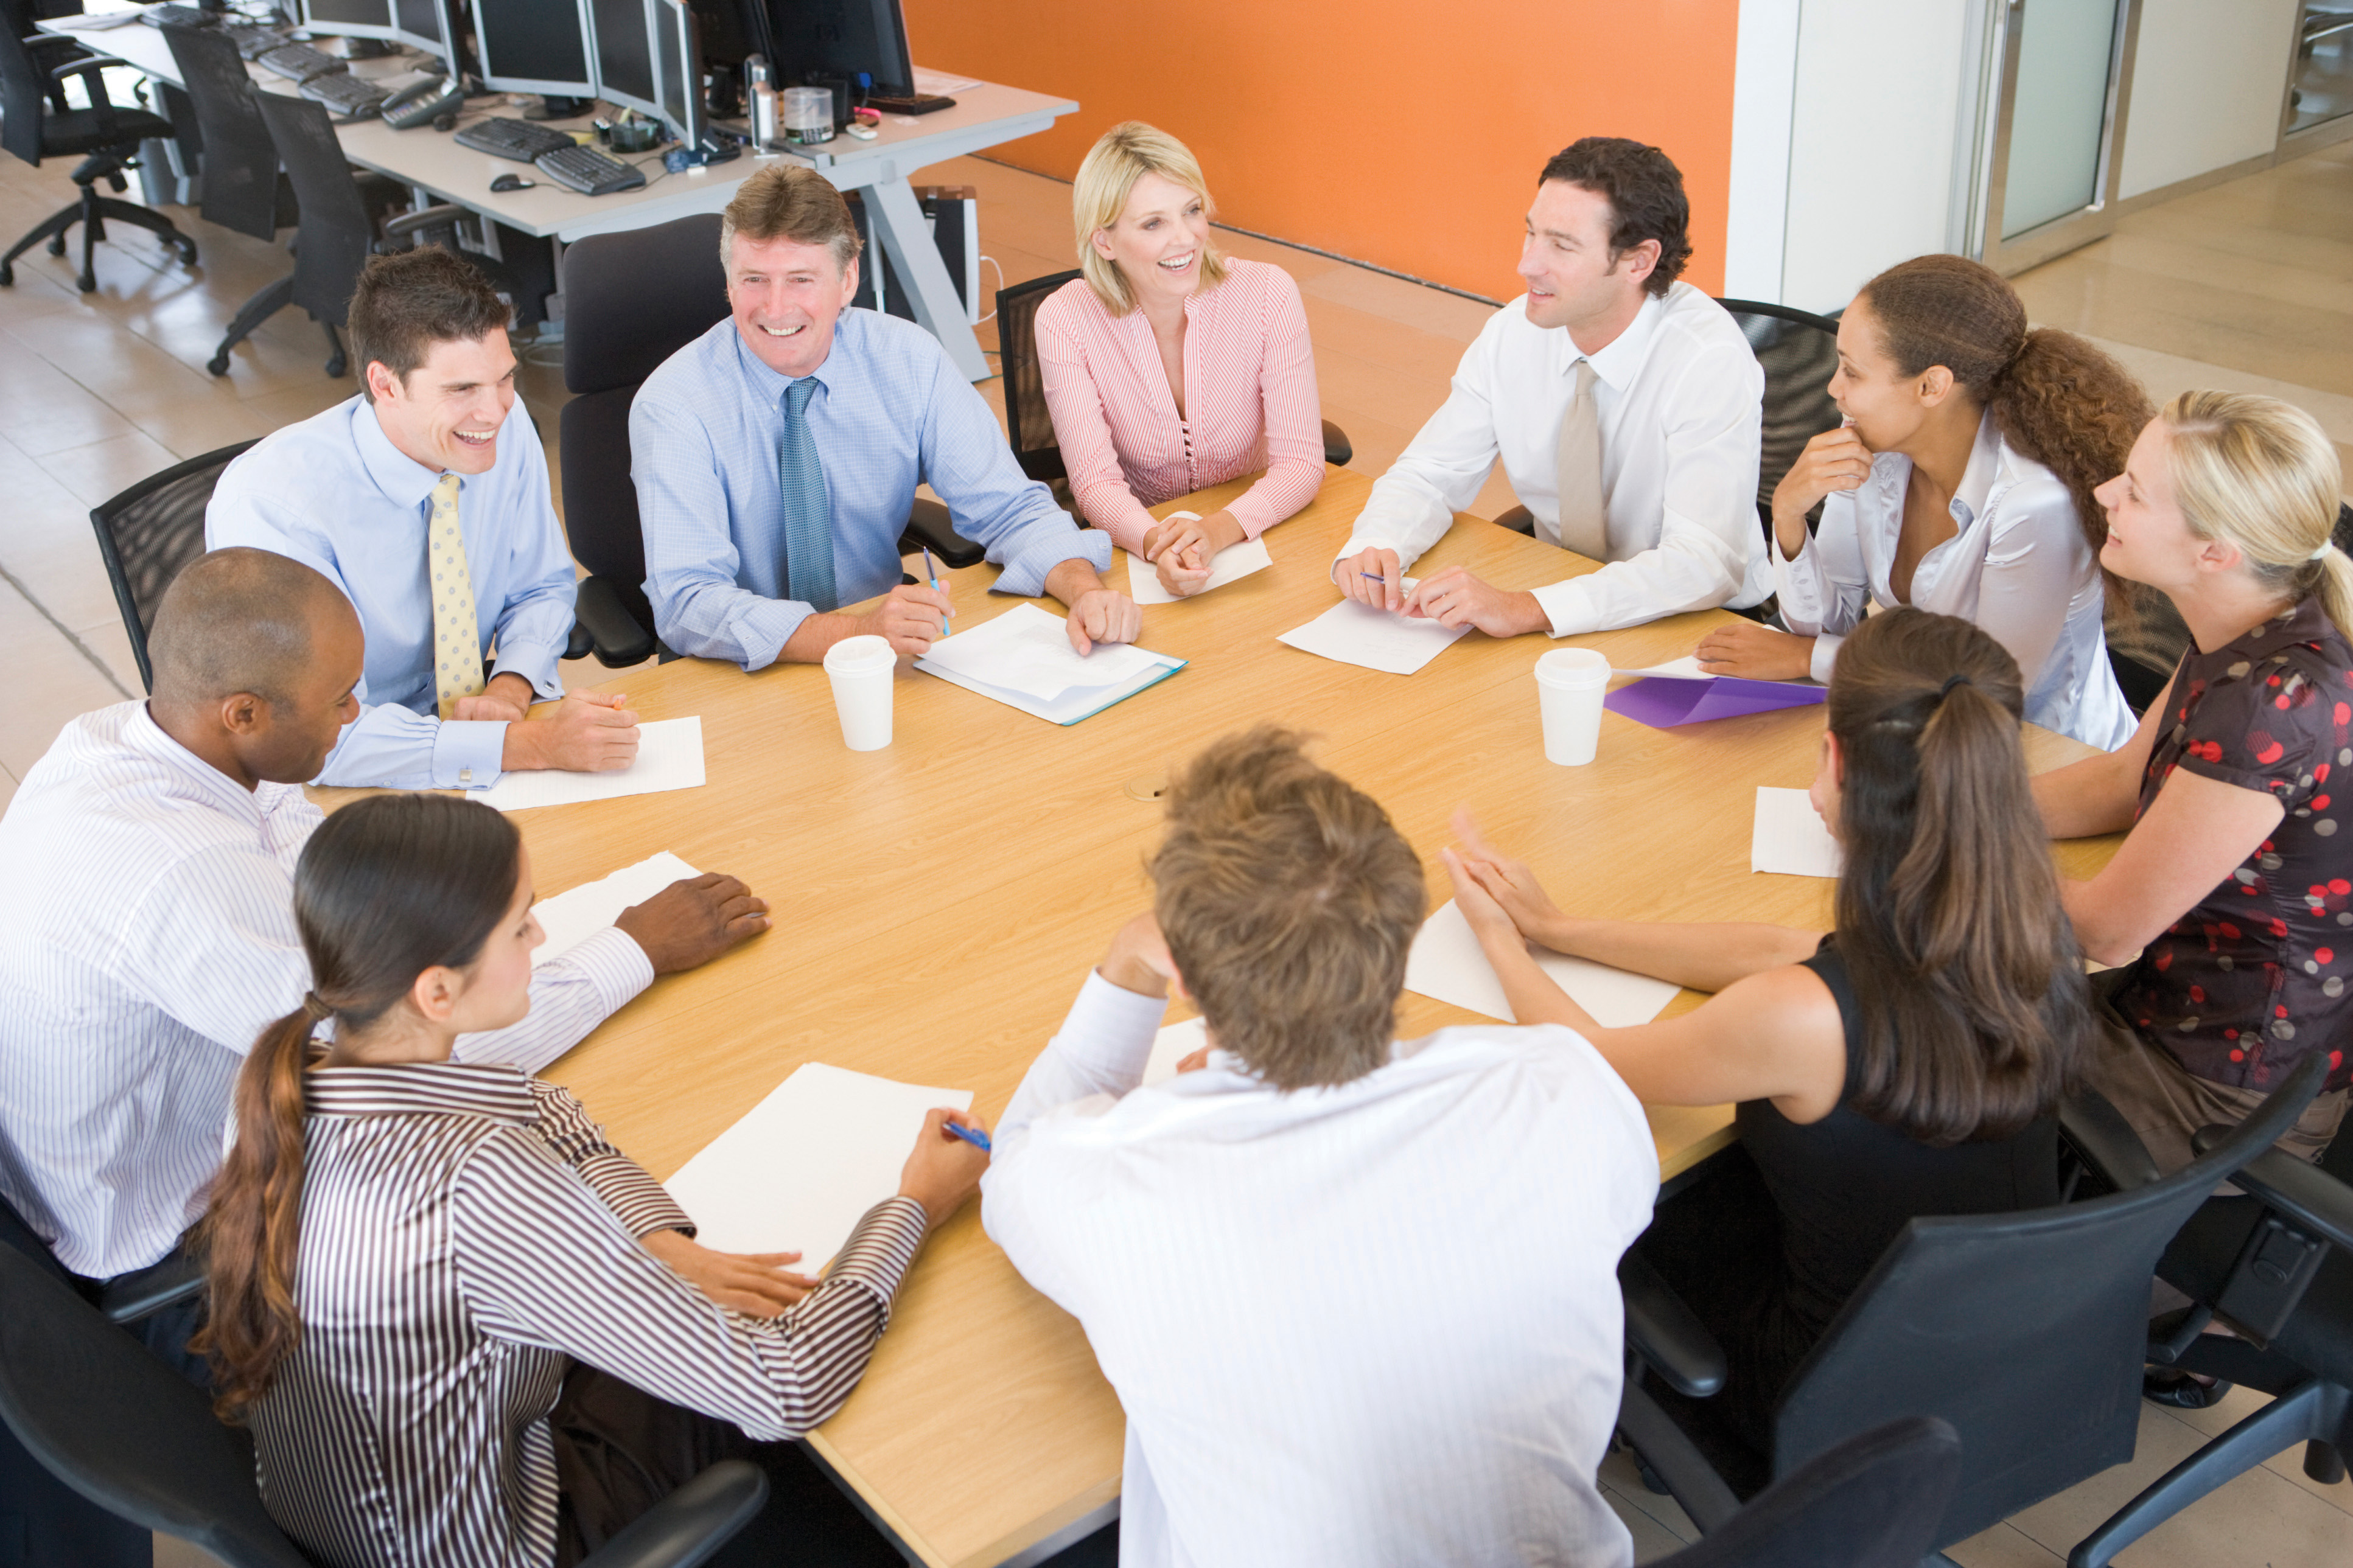 How to transcribe a focus group